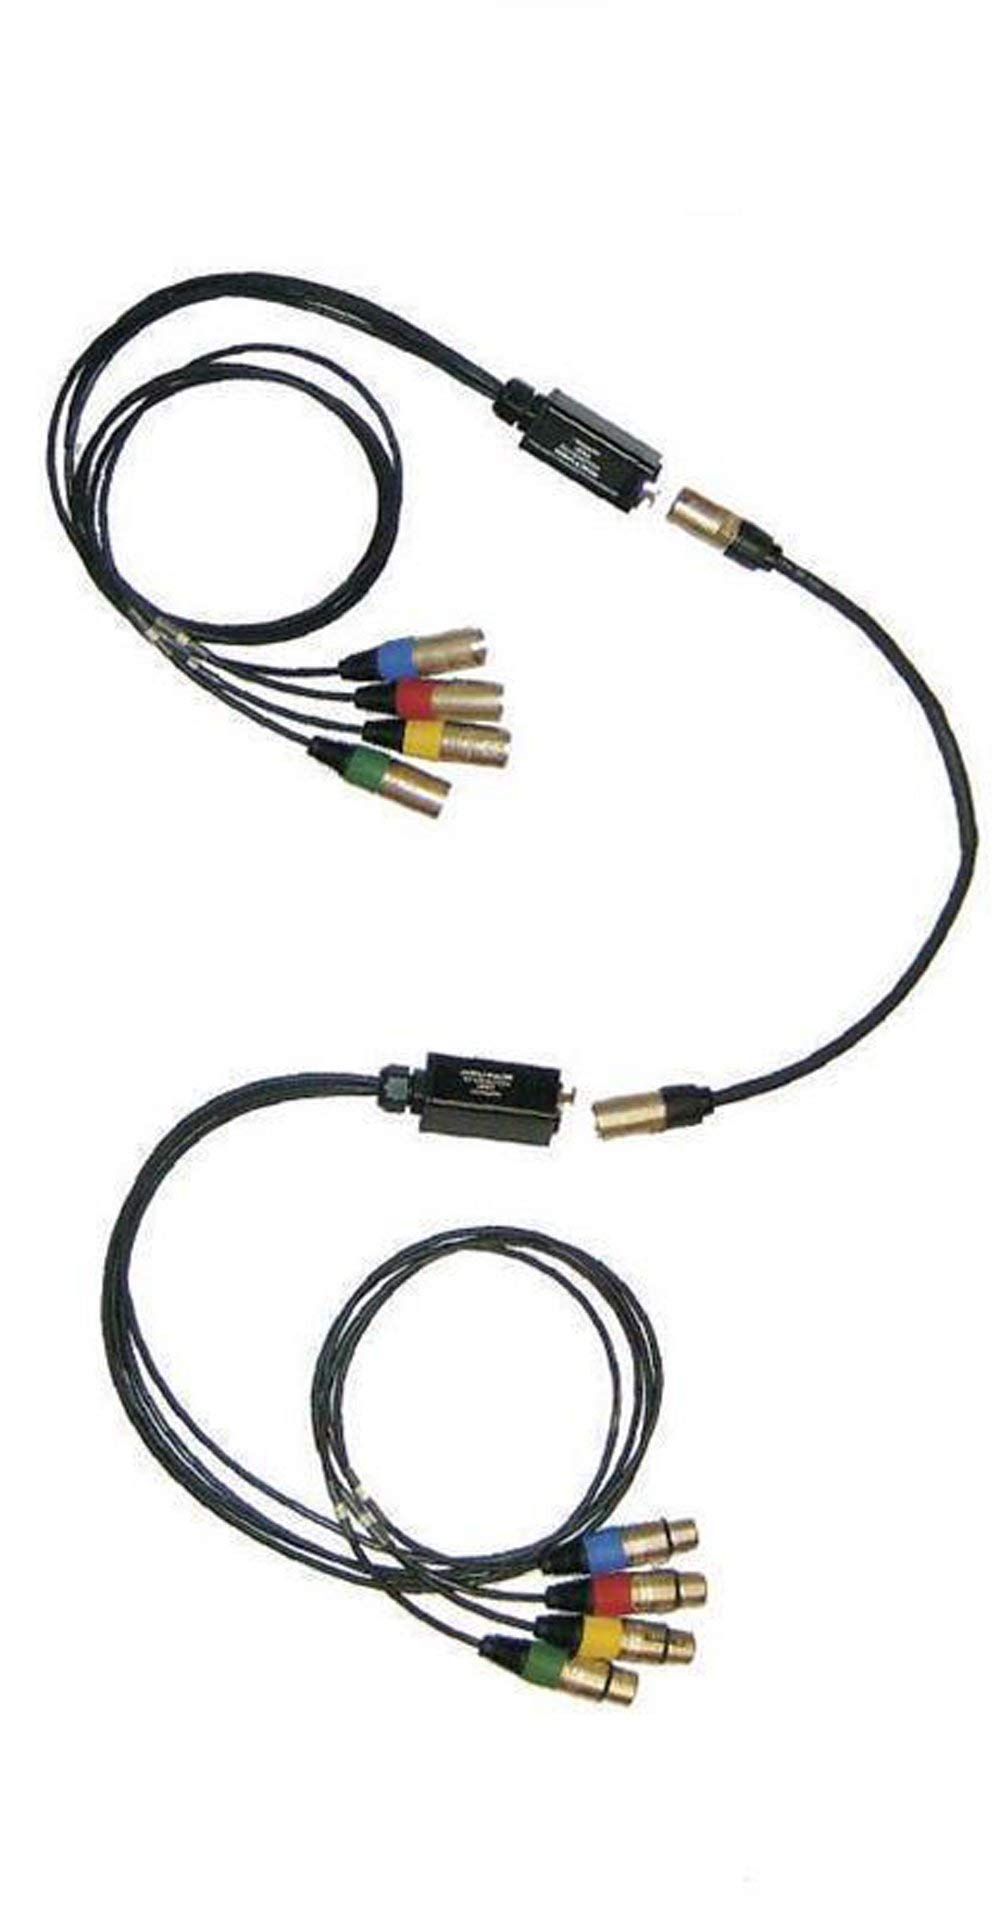 Other brand 2 Digital Snakes Converts DMX - Cat5 Includes (4) 3 Pin Female (4) 3 Pin Male by Other brand